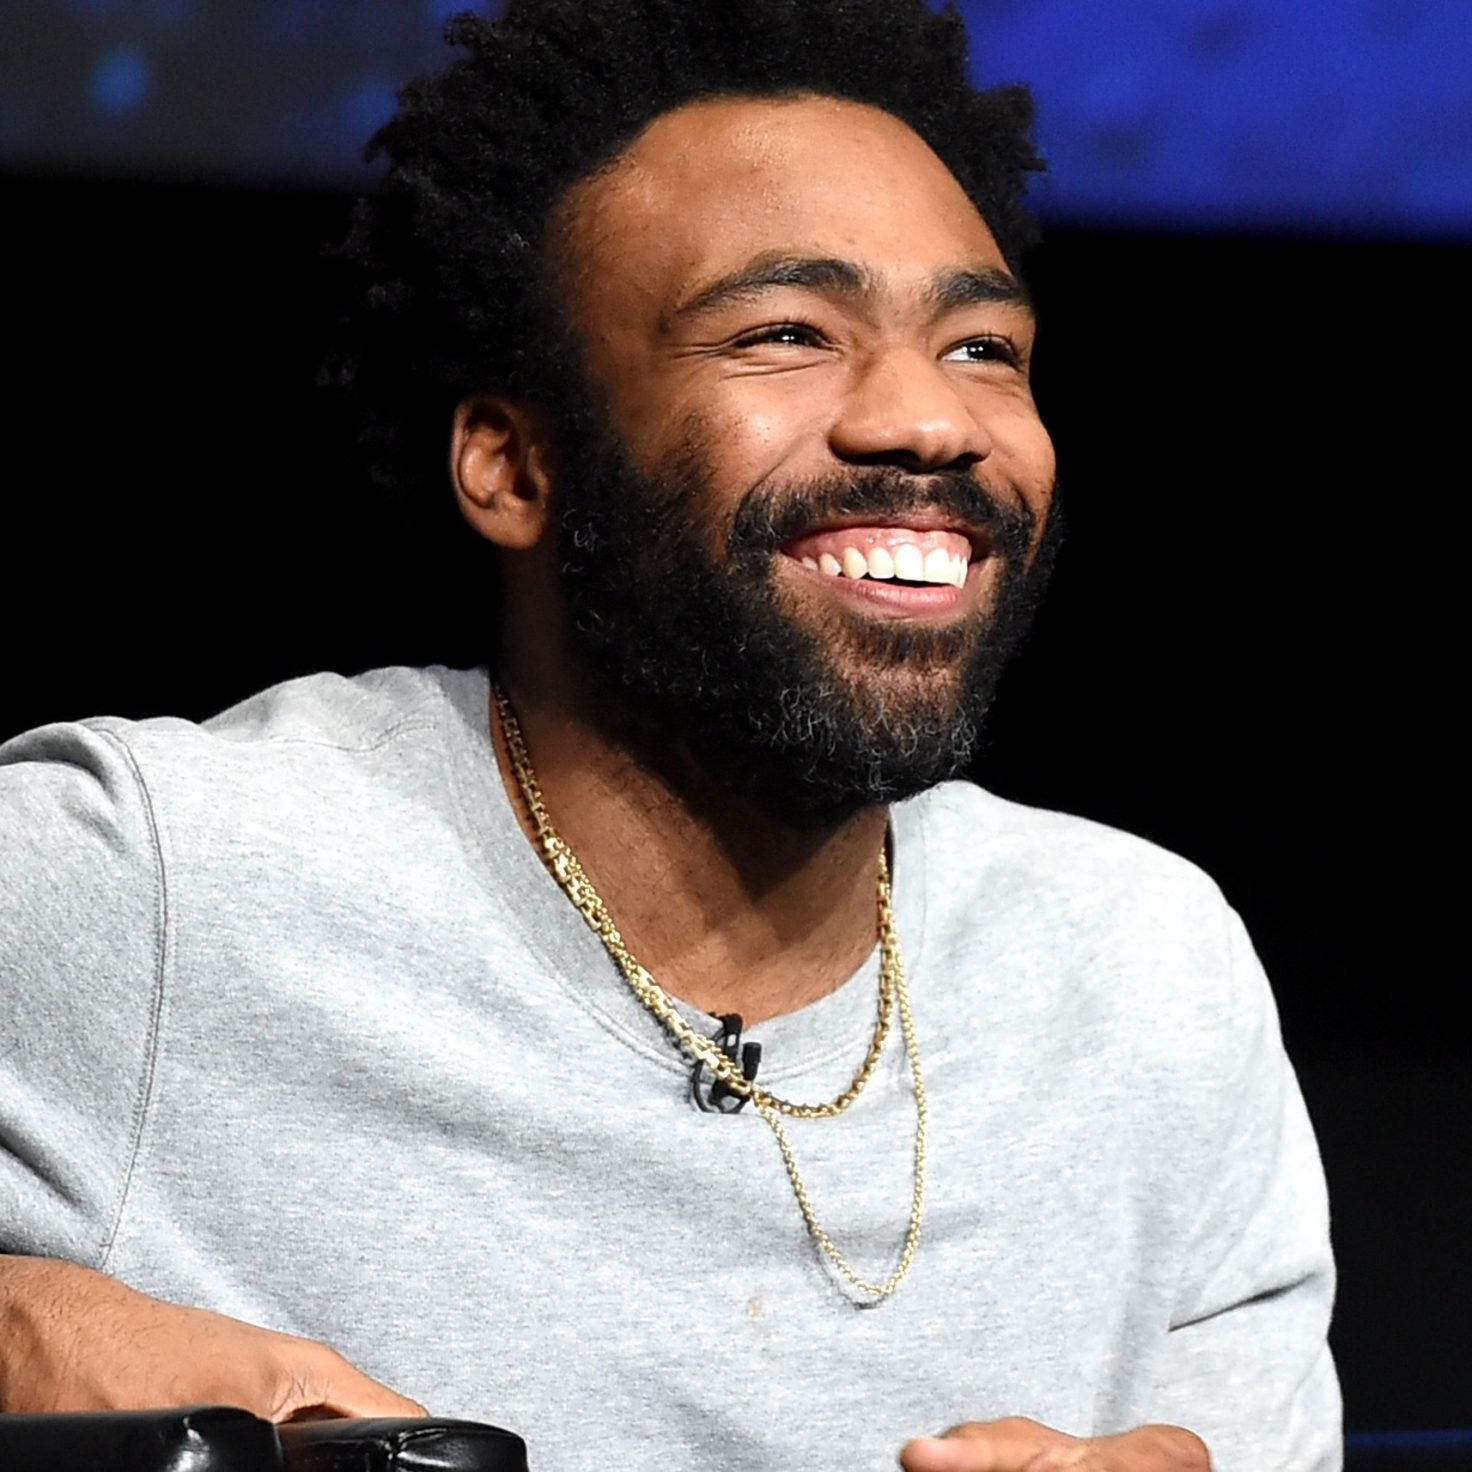 Donald Glover Gives The People What They Want: New Music